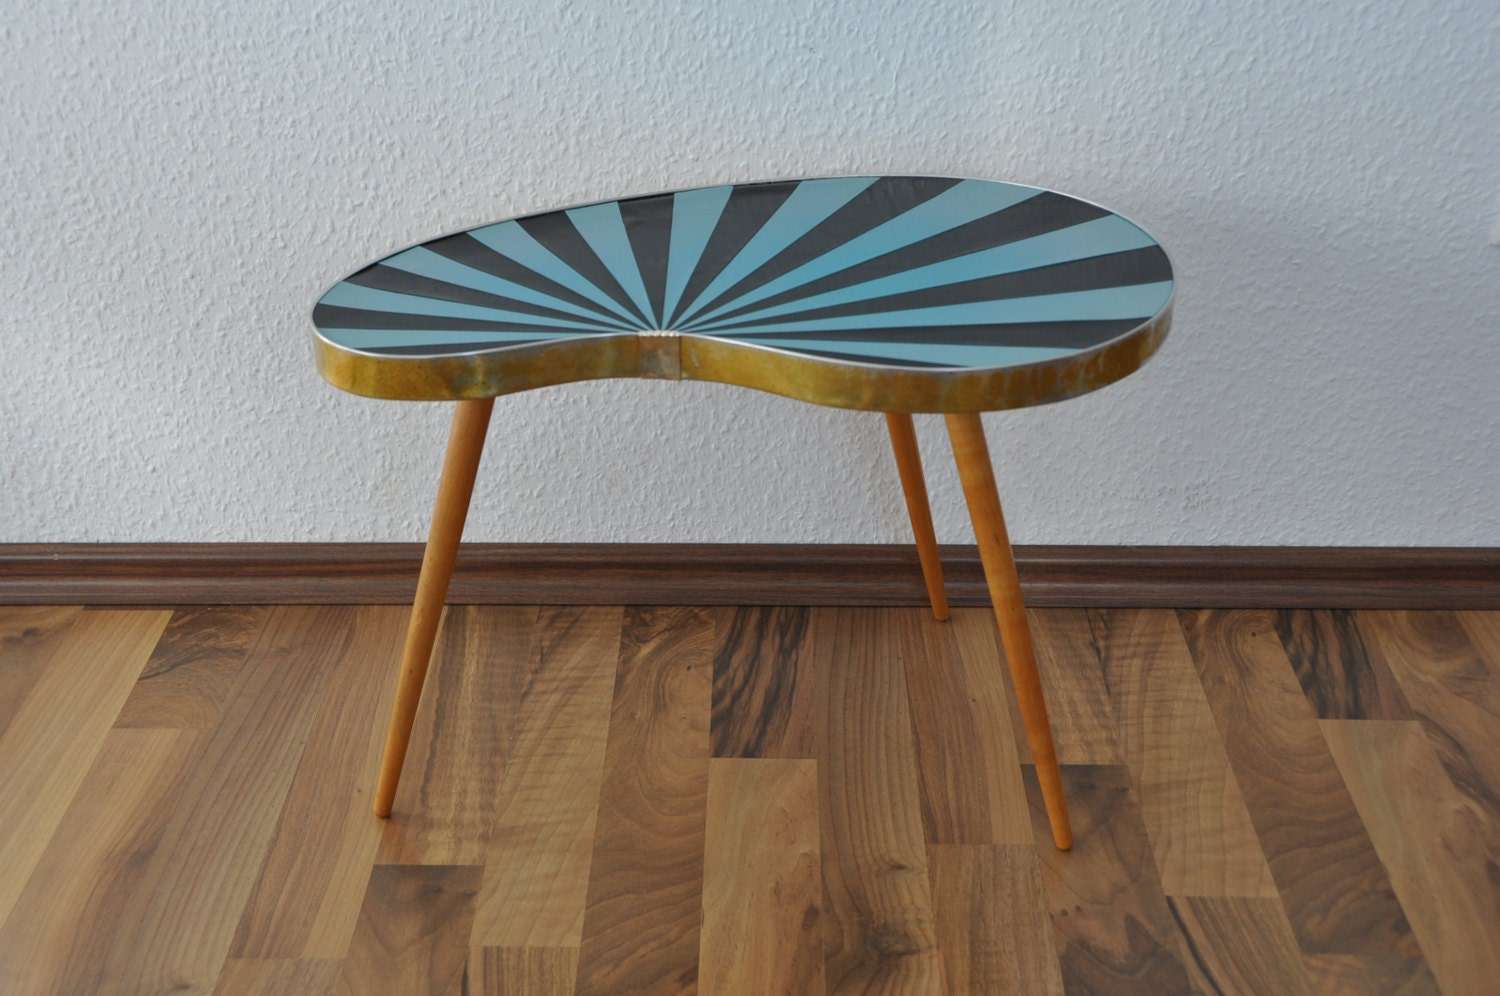 RARE Authentic Mid Century Plant Stand. Striped. Black and sky blue.1950s. Small Table. Germany. - BerlinerStrasse